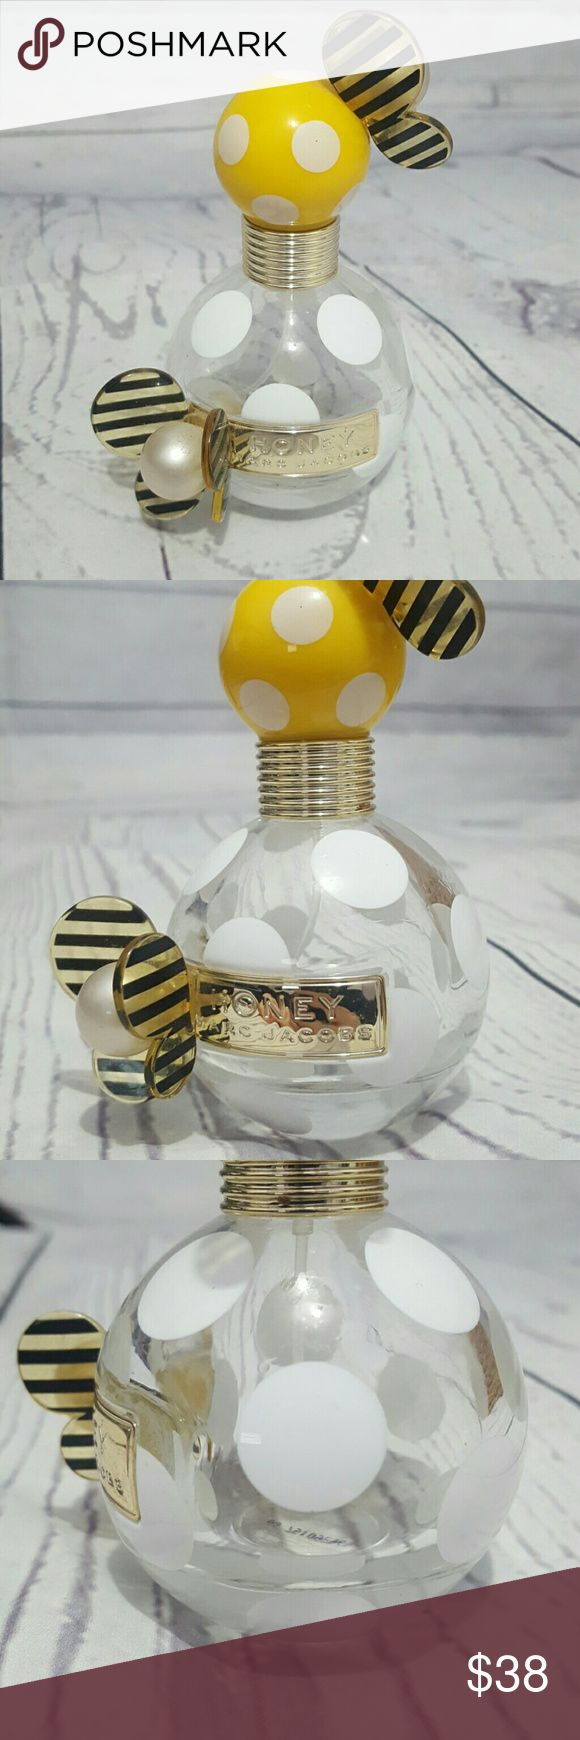 Marc Jacobs Honey 1.7 Fl. Oz Bee Perfume Bottle Bottle has some scratches and scuff marks but is in good condition. Has a small amount of product left. Great for a decoration! Marc Jacobs Makeup